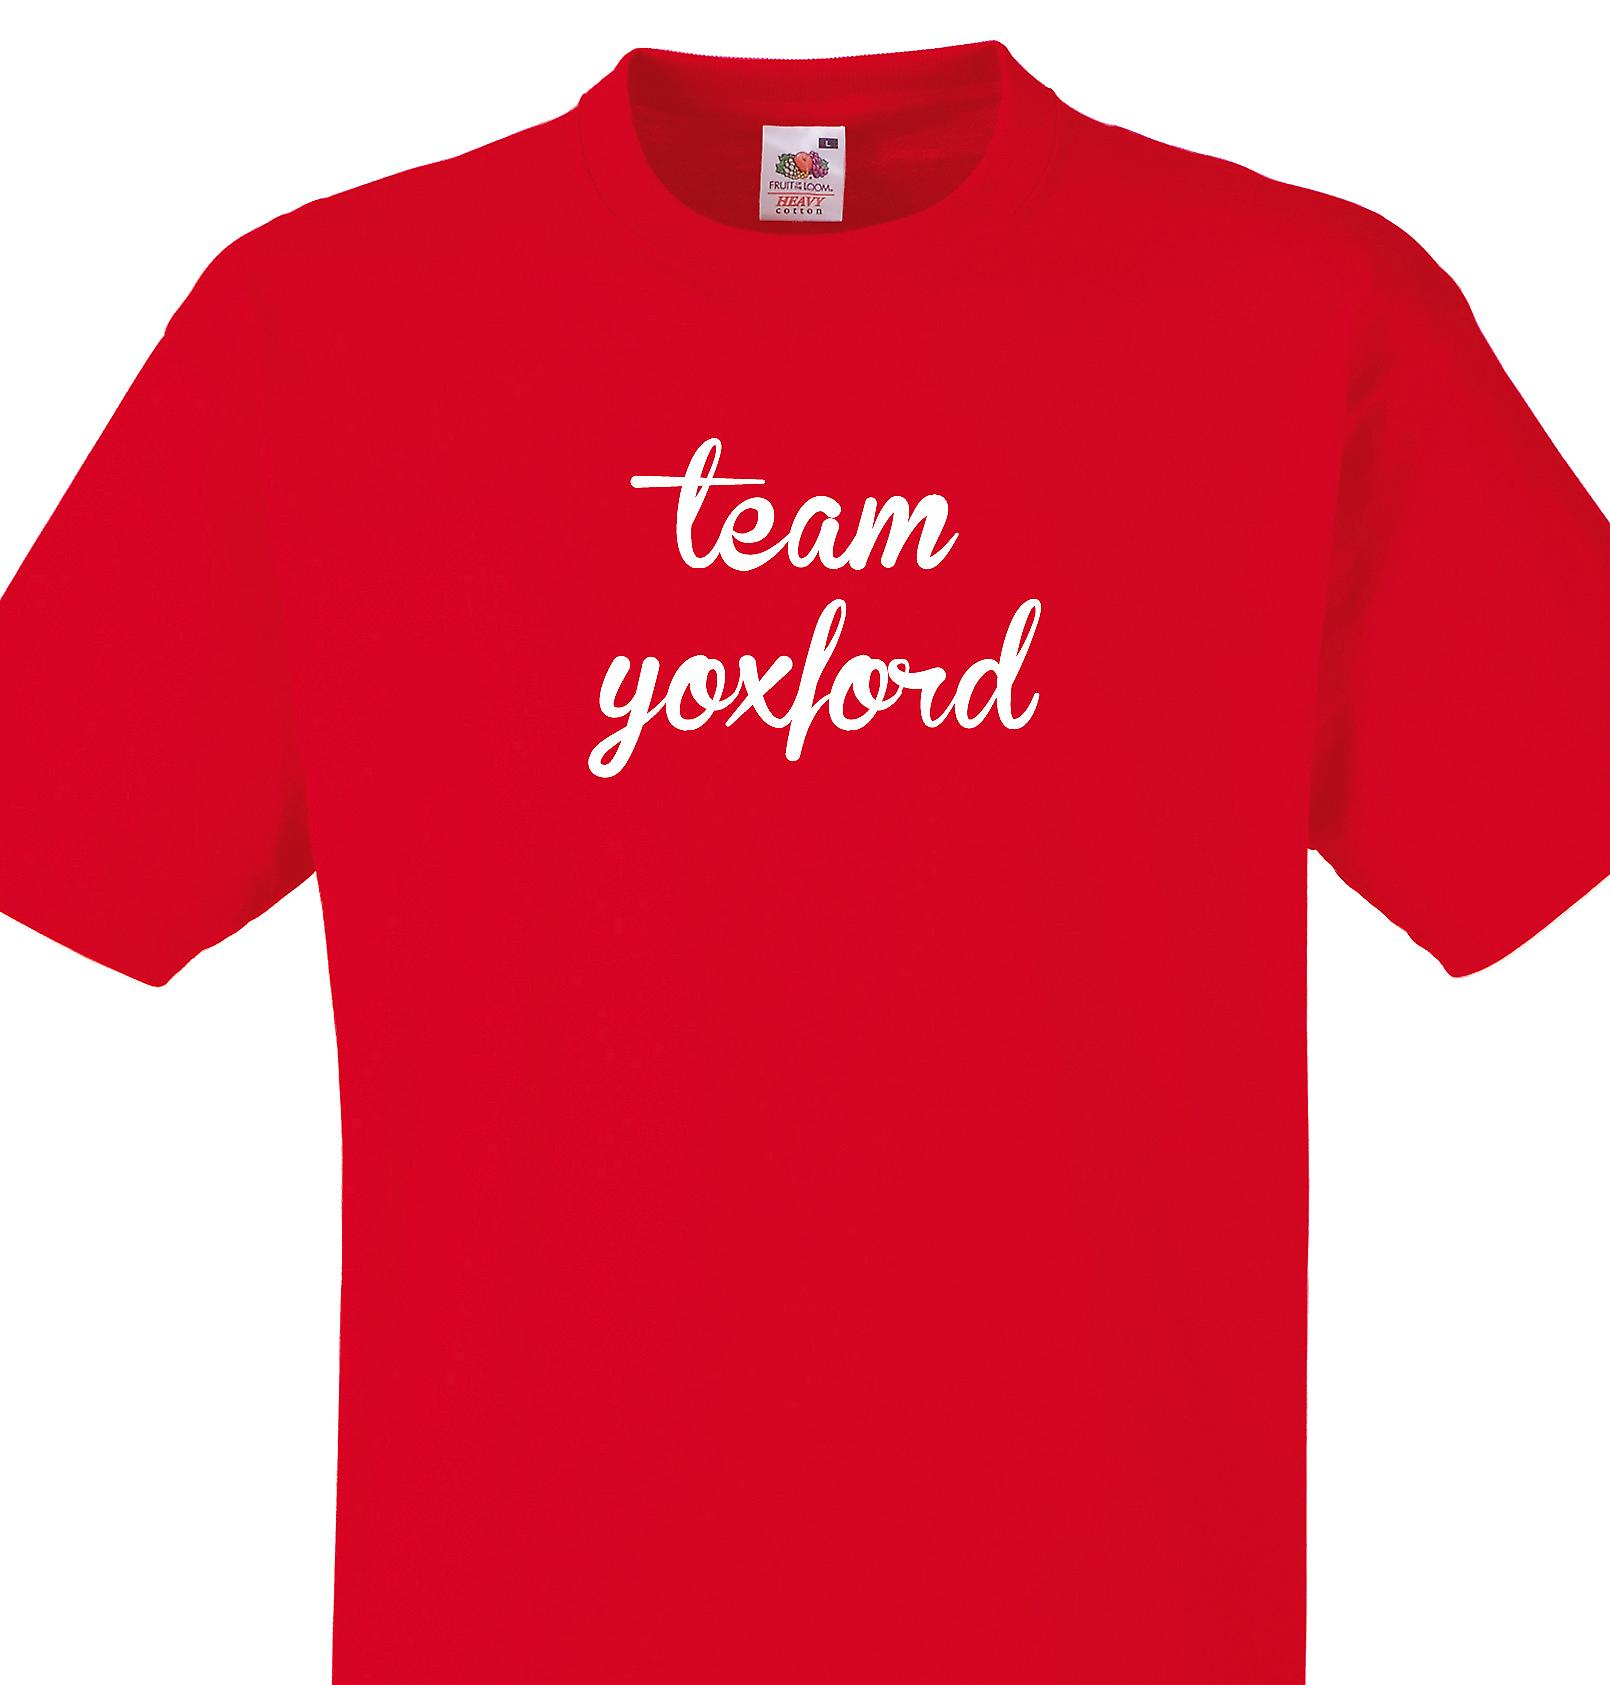 Team Yoxford Red T shirt